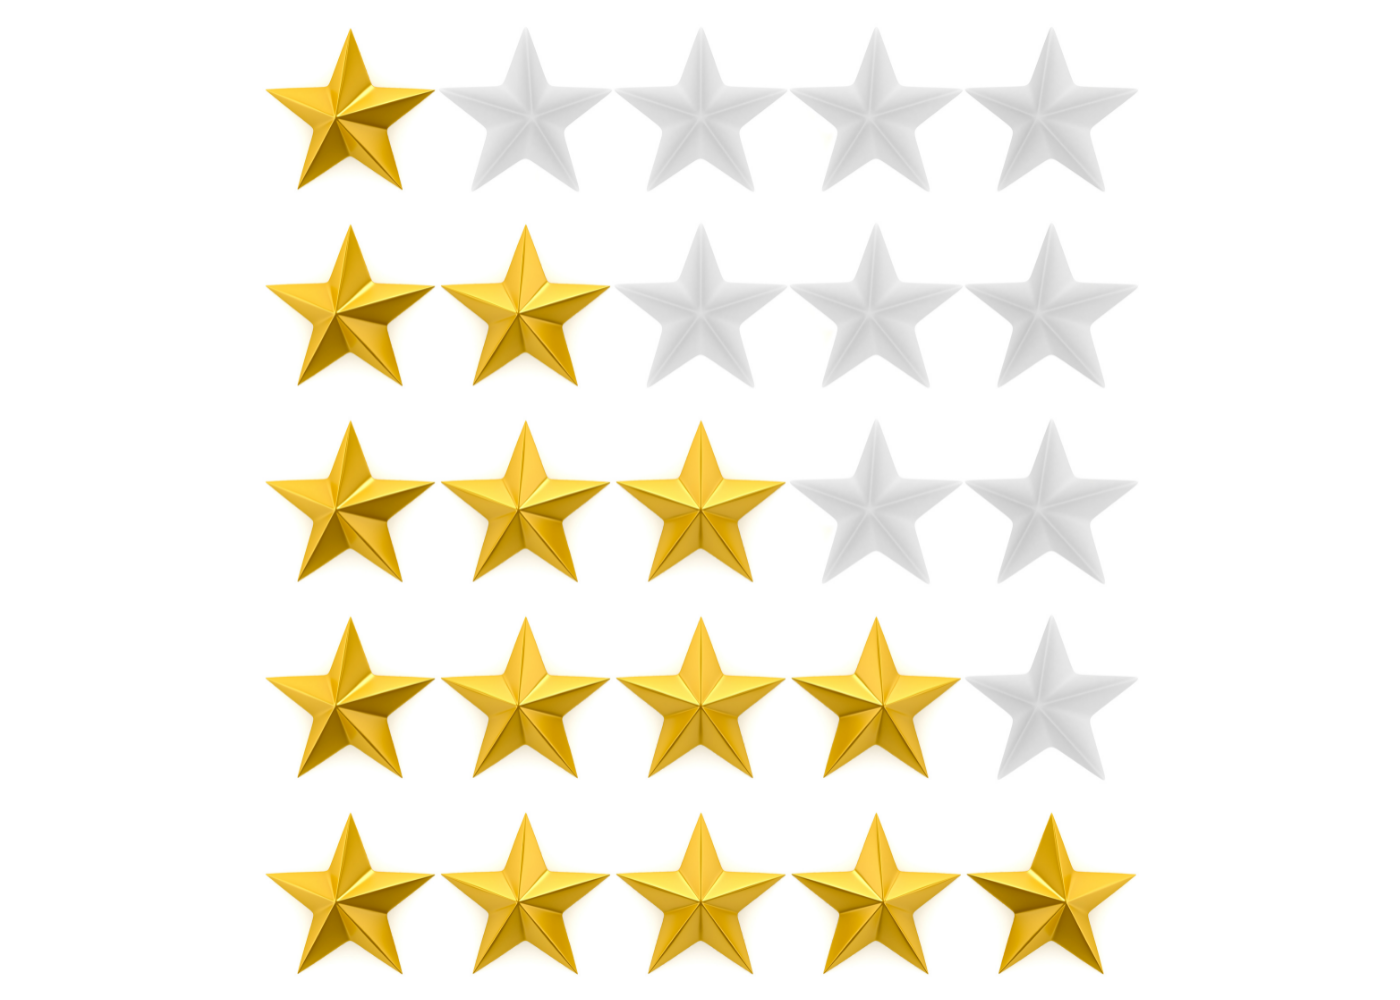 Stars on a review board.